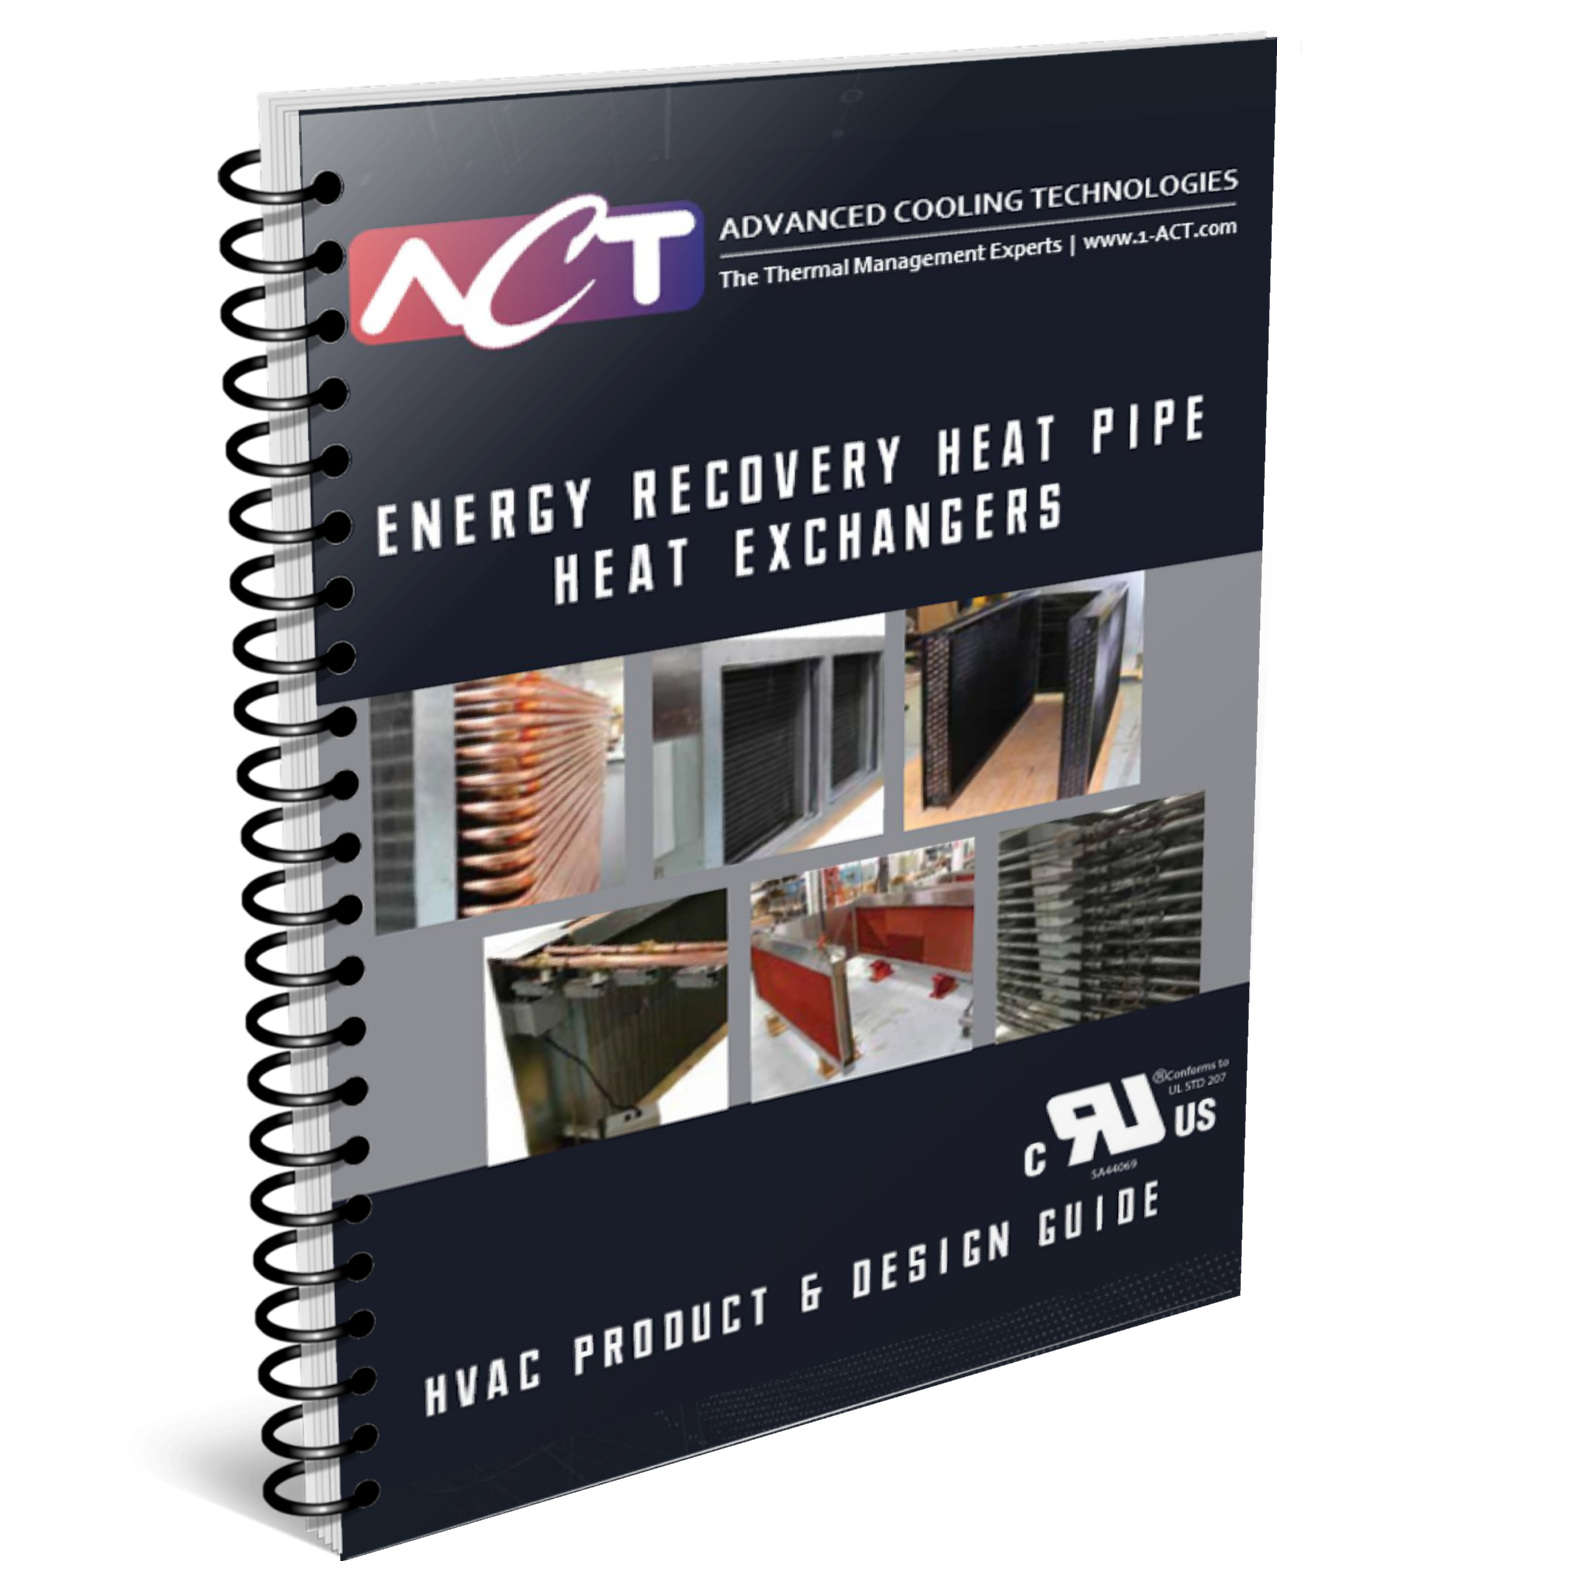 Energy Recovery Heat Pipe Heat Exchangers Brochure (HVAC)